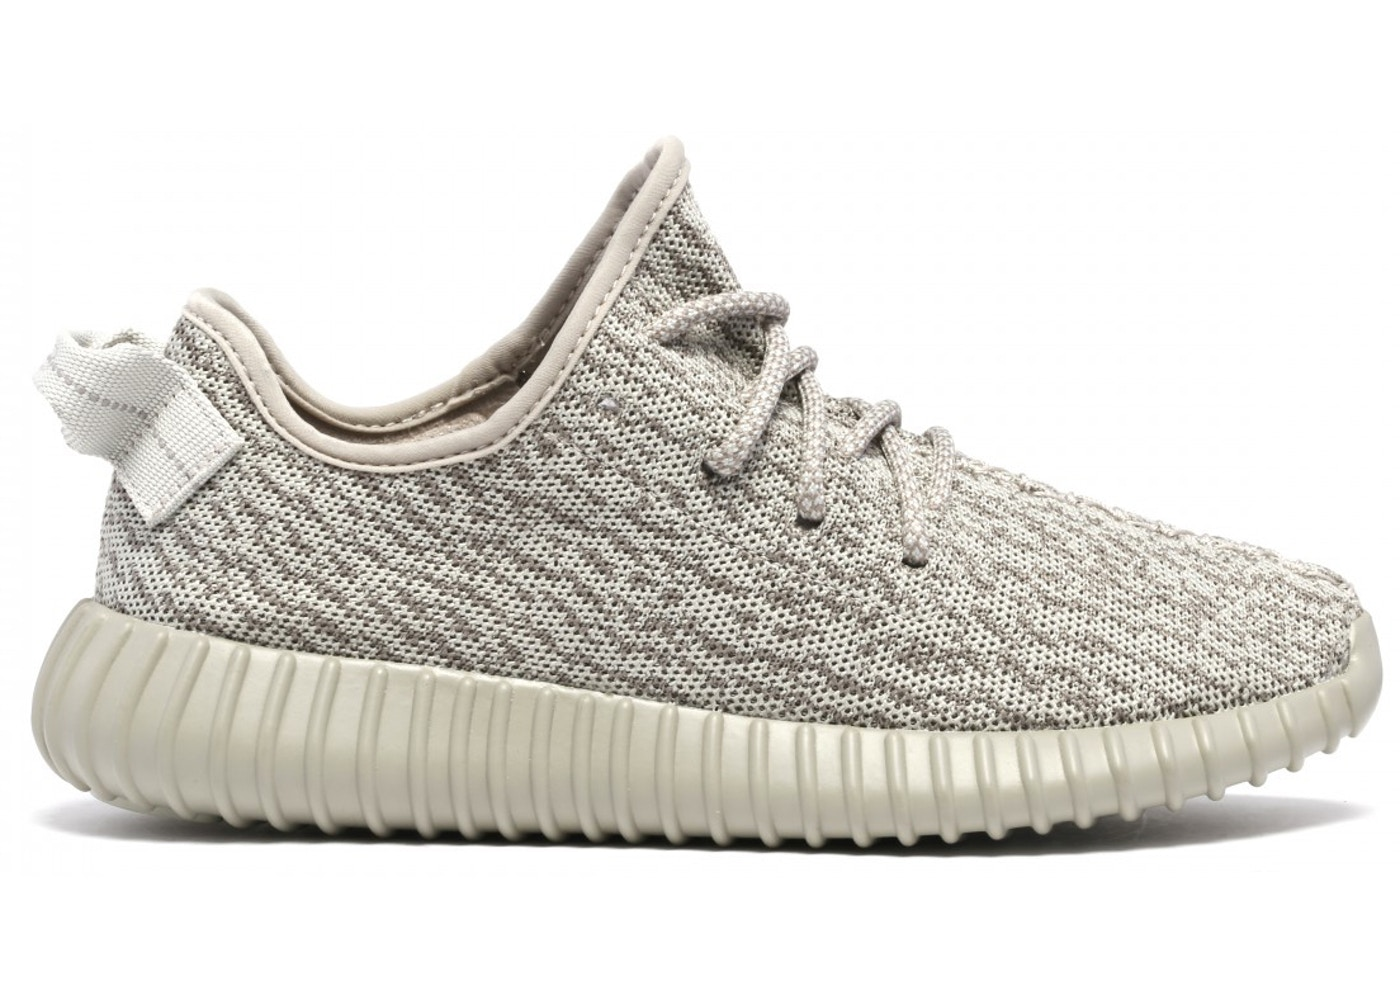 e3544d2e44aba adidas Yeezy Shoes - Average Sale Price